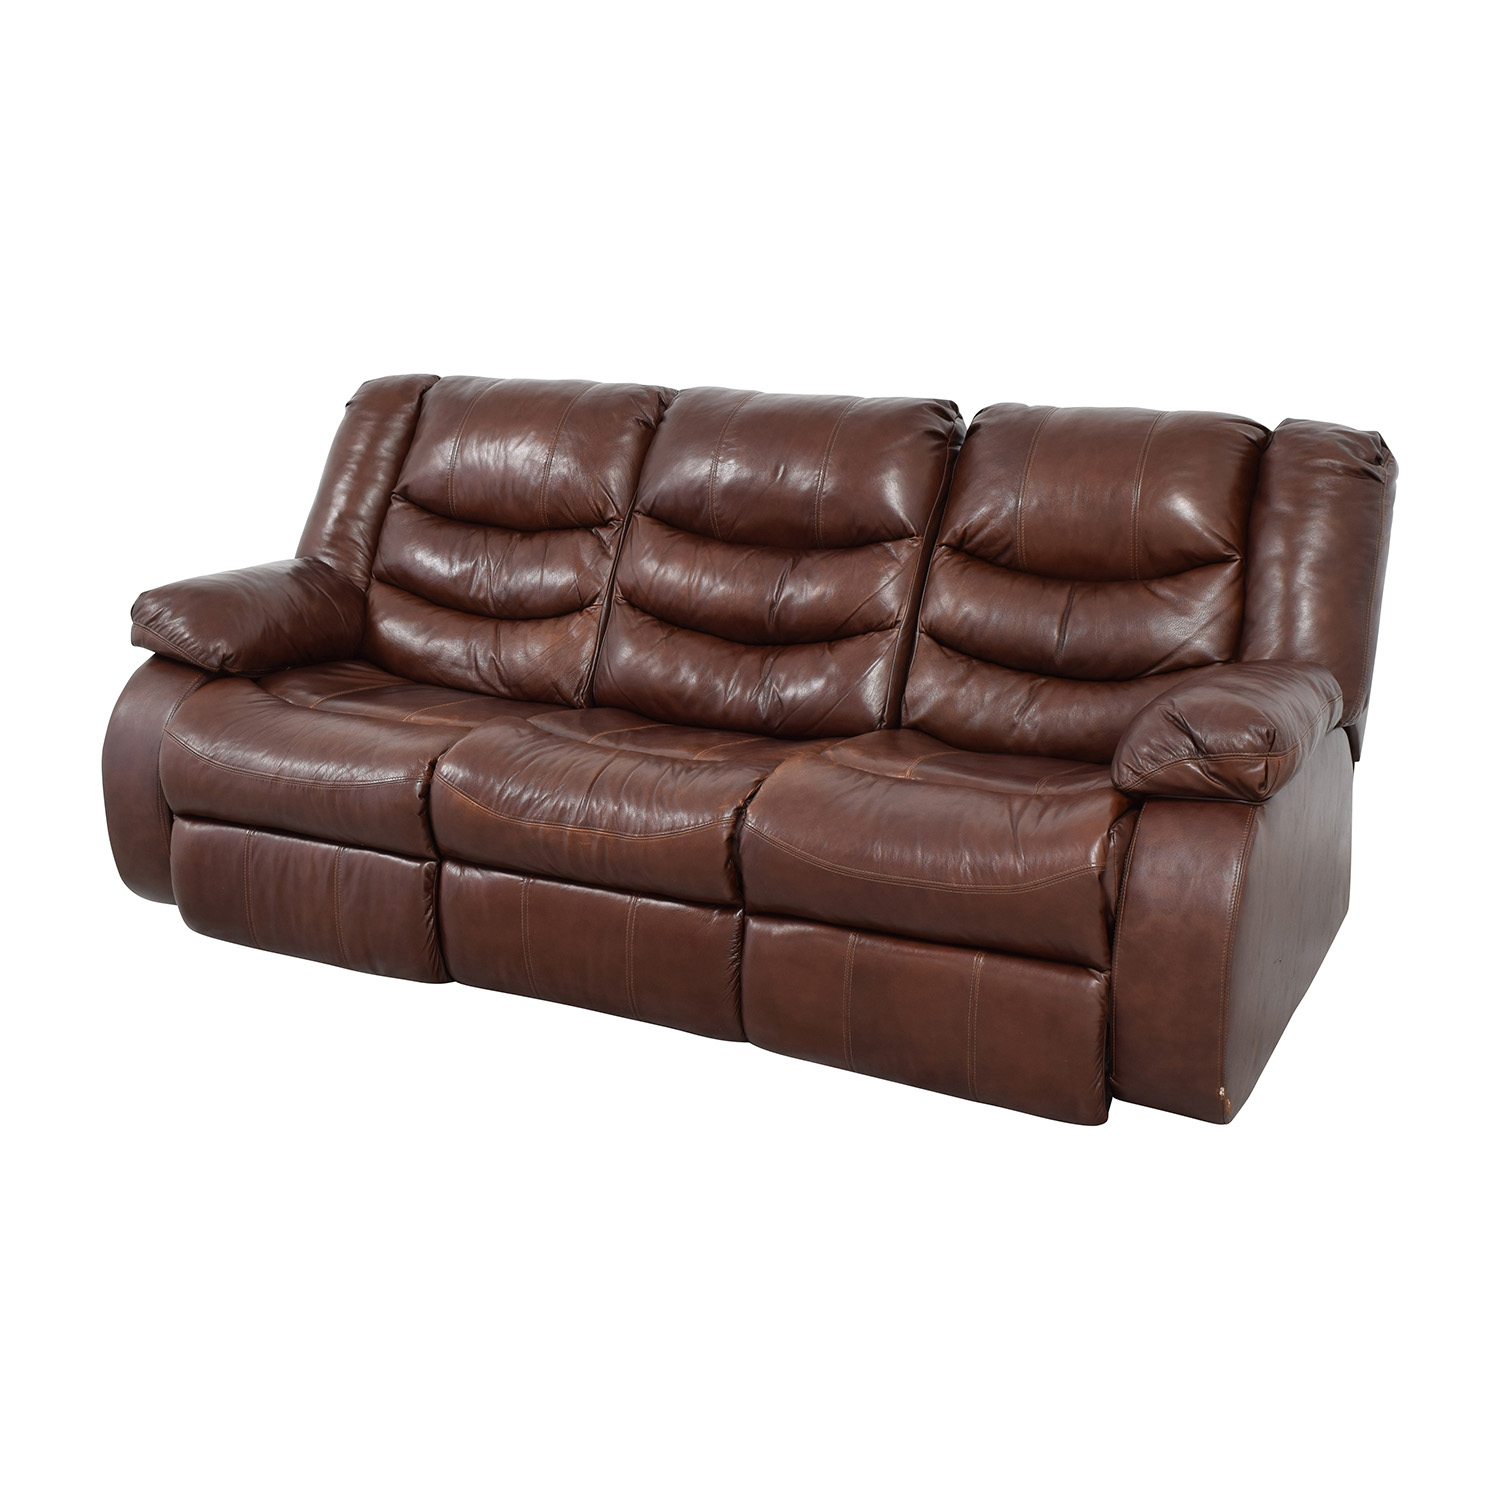 Ashley Furniture Leather Chair 81 Off Ashley 39s Furniture Ashley Furniture Large Brown